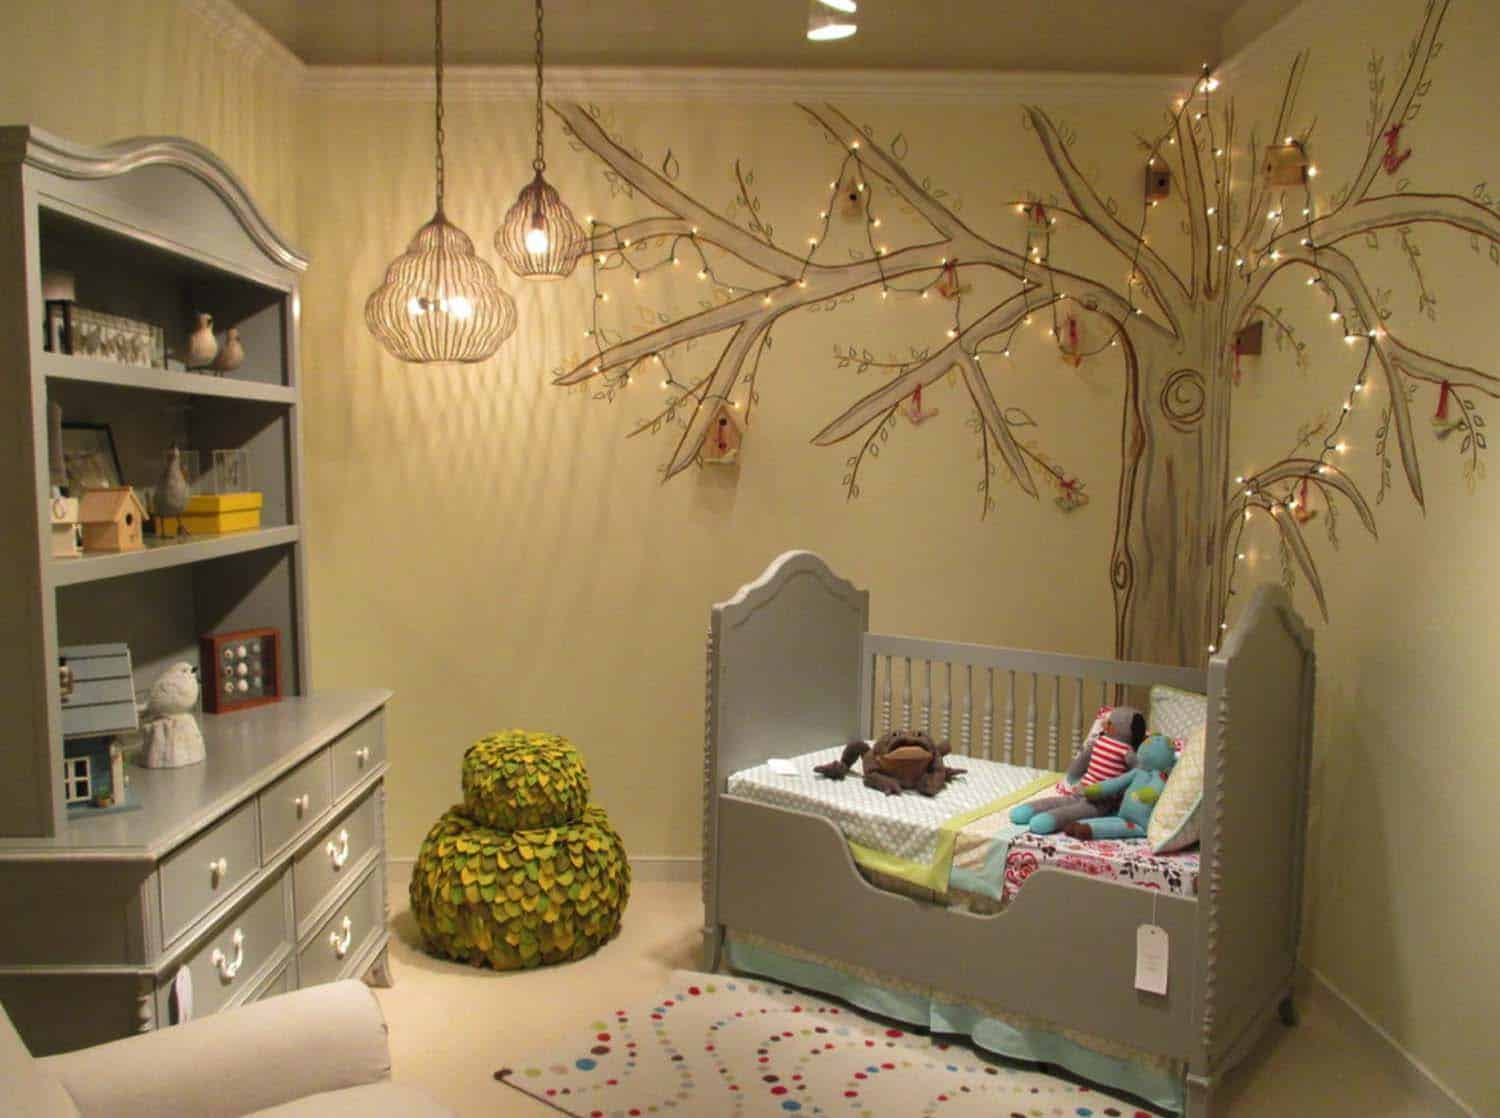 Stylish Nursery Decorating Ideas-23-1 Kindesign